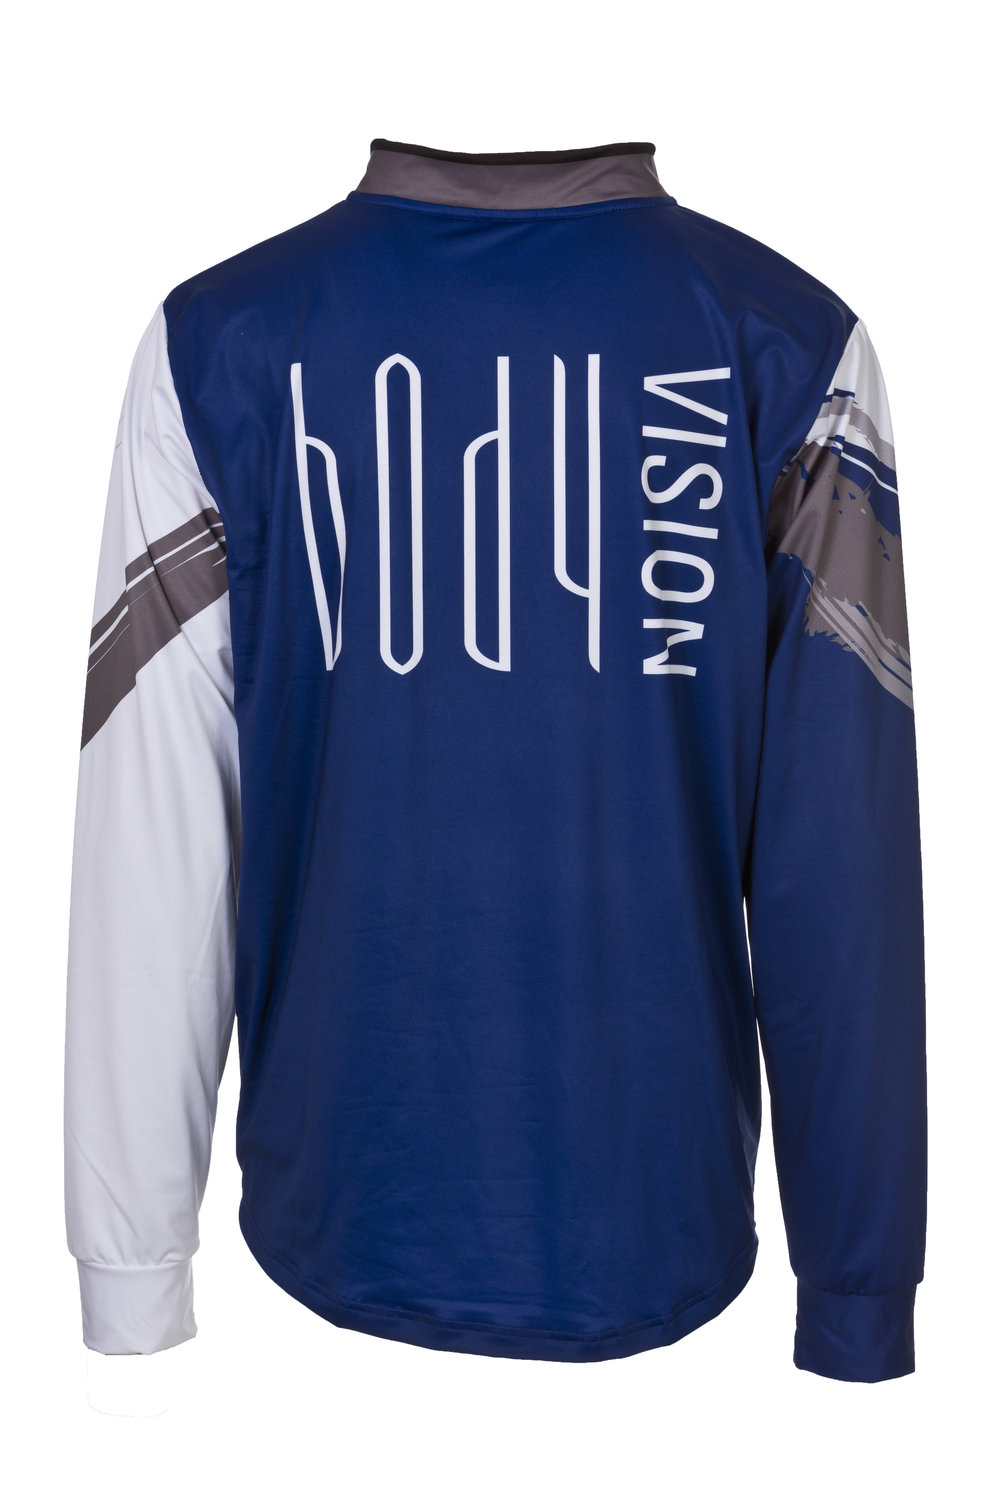 OS-09060 warm up sweat back.jpg